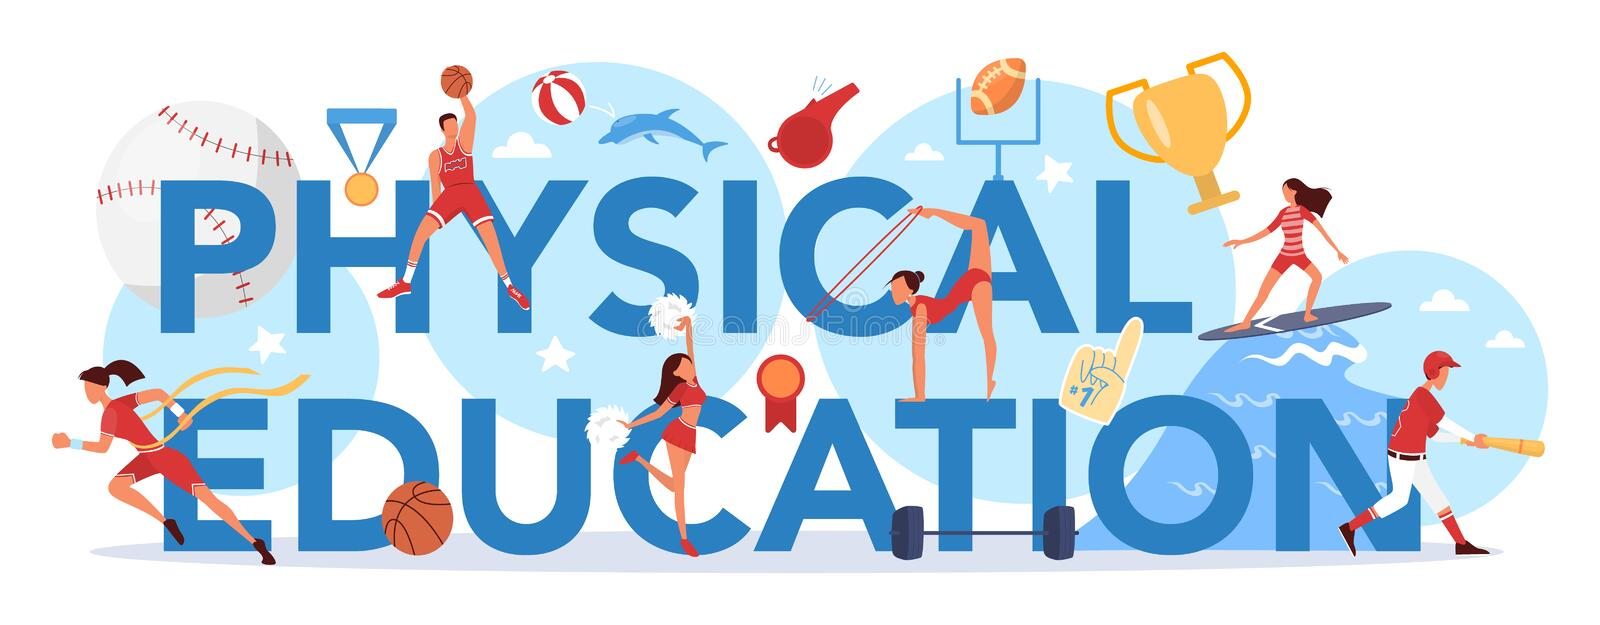 Physical Education Stock Illustrations – 12,441 Physical Education Stock  Illustrations, Vectors & Clipart - Dreamstime